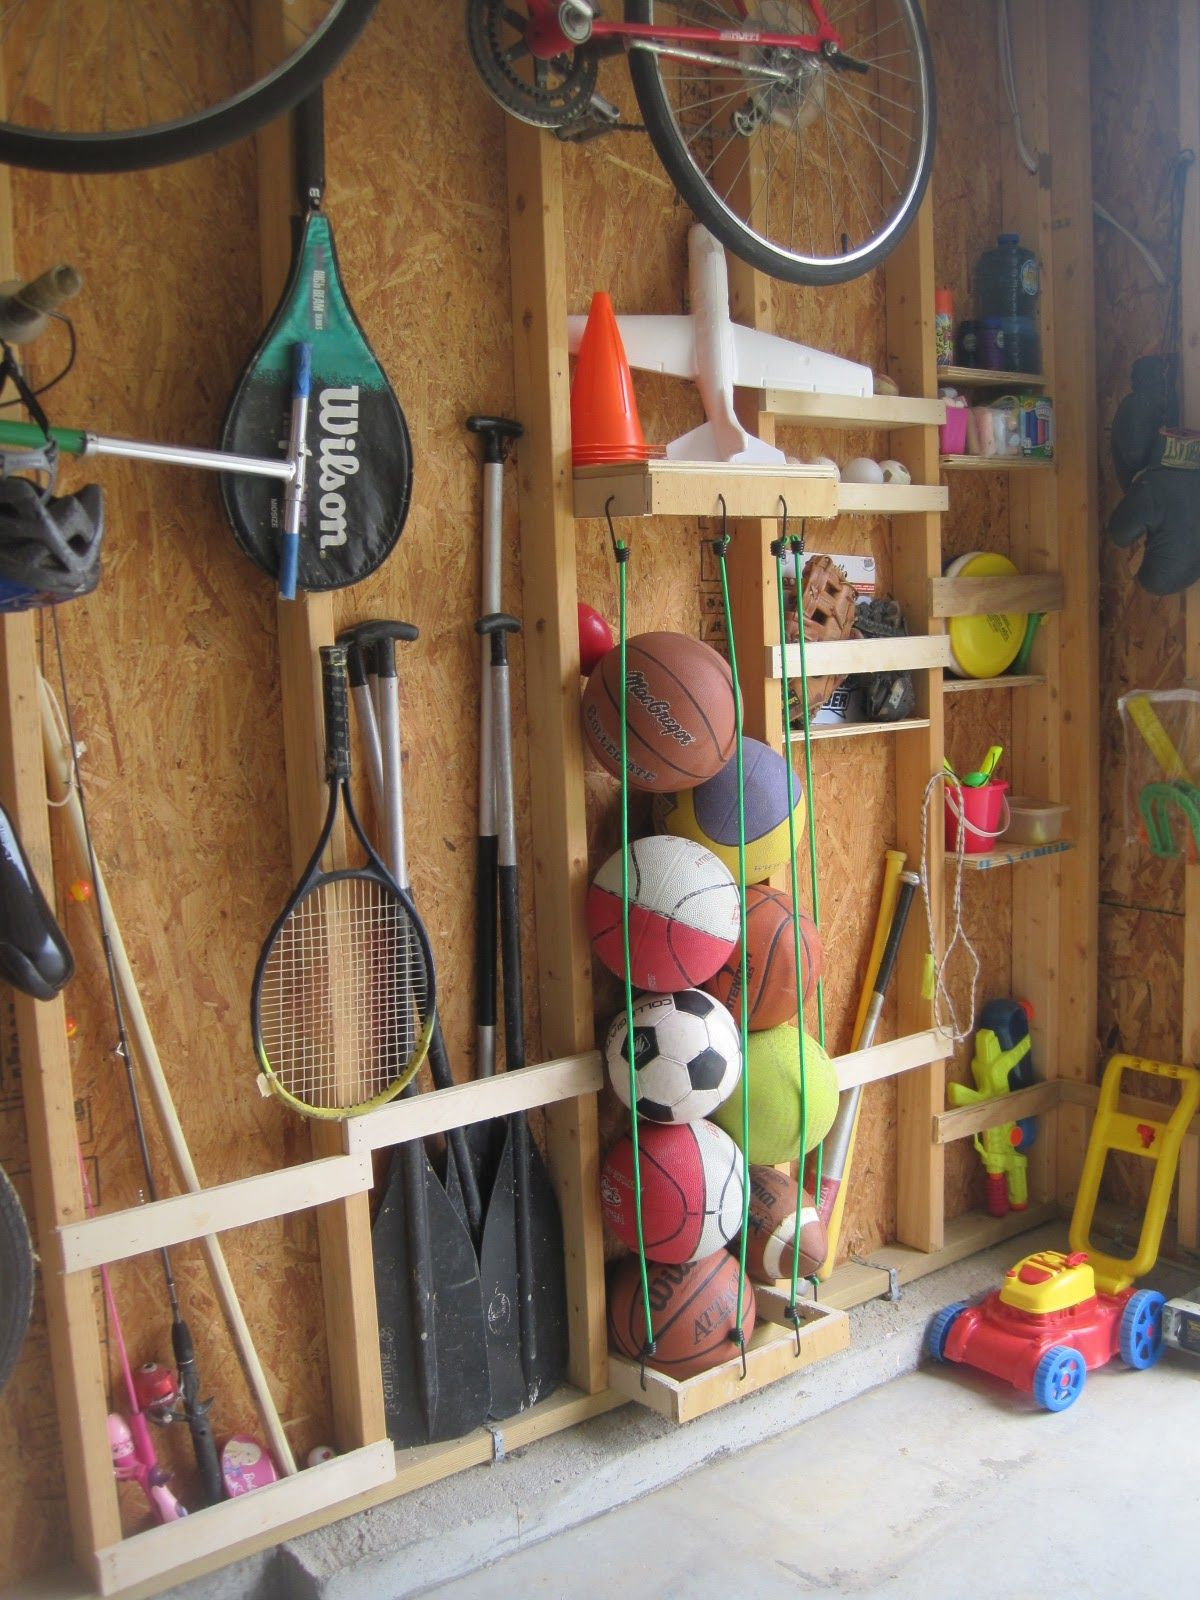 Oddly Shaped Items Are Often Storage Puzzlers. This Clever Mom Rigged A  Bungee Cord System